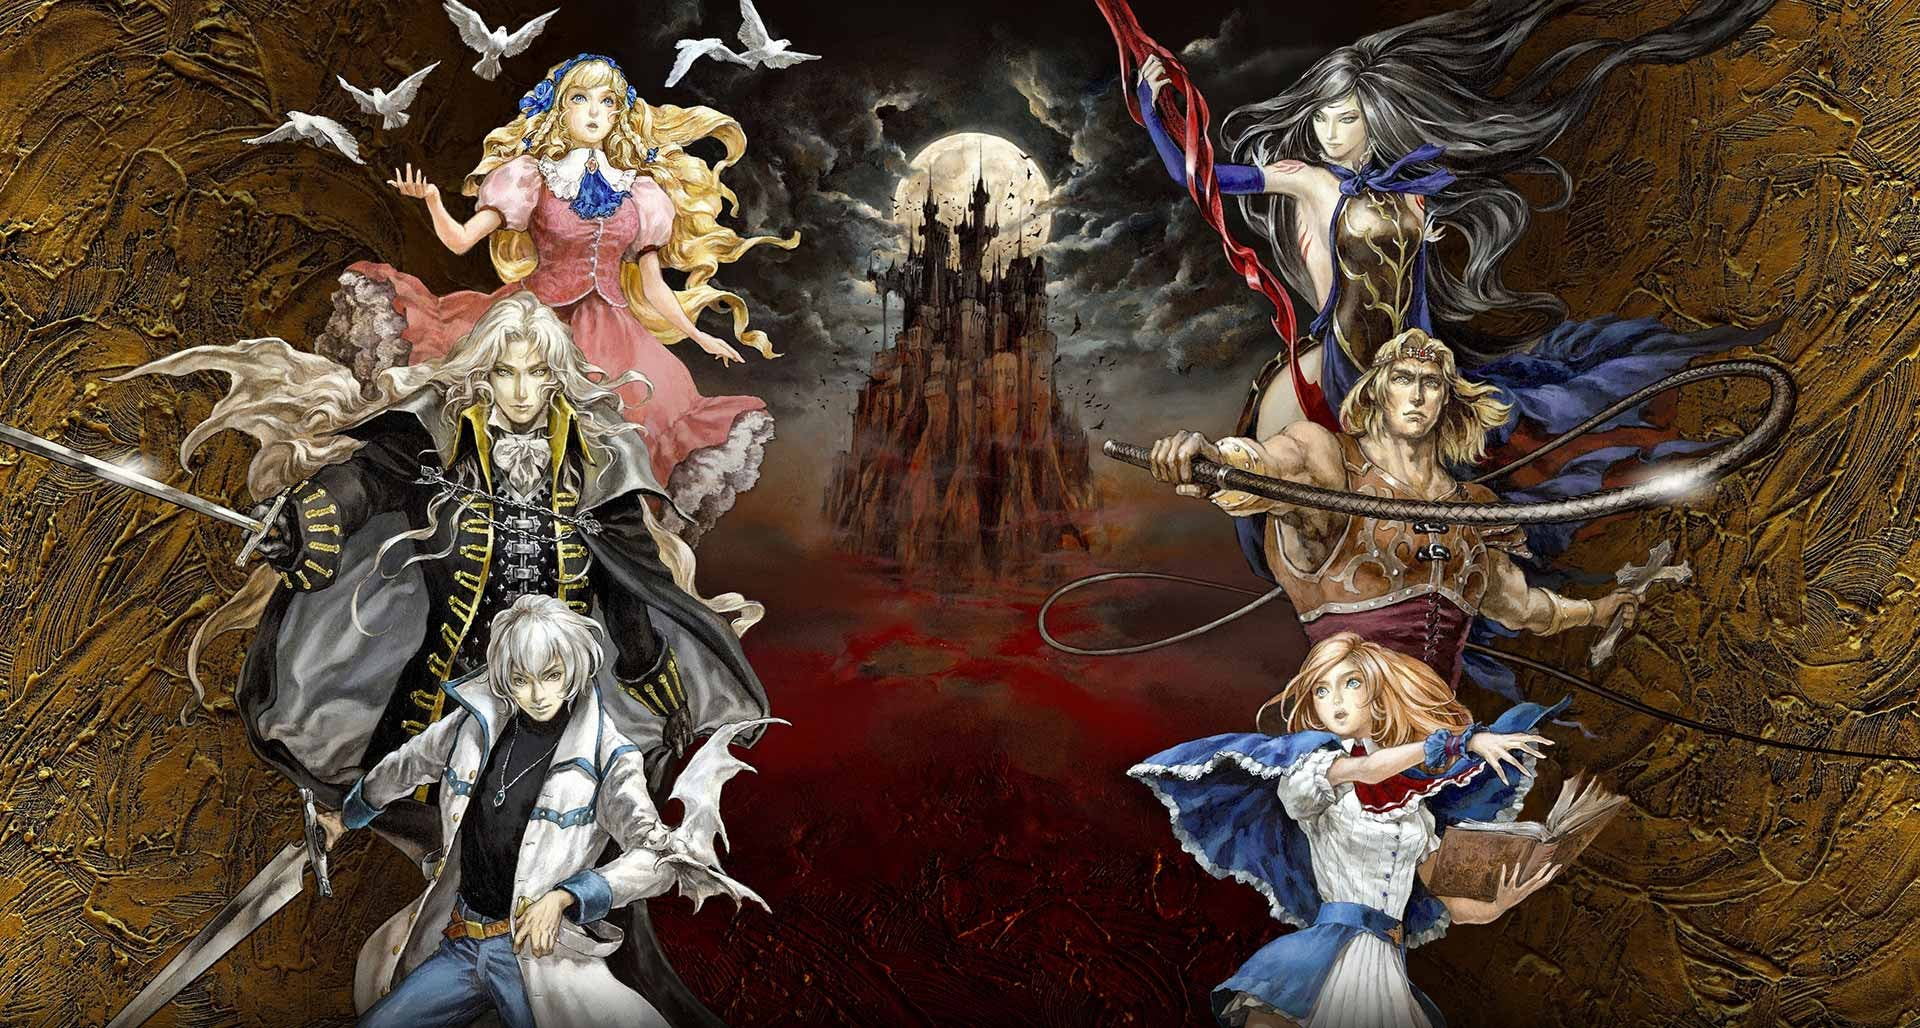 The Next Castlevania Game Is Coming To Phones